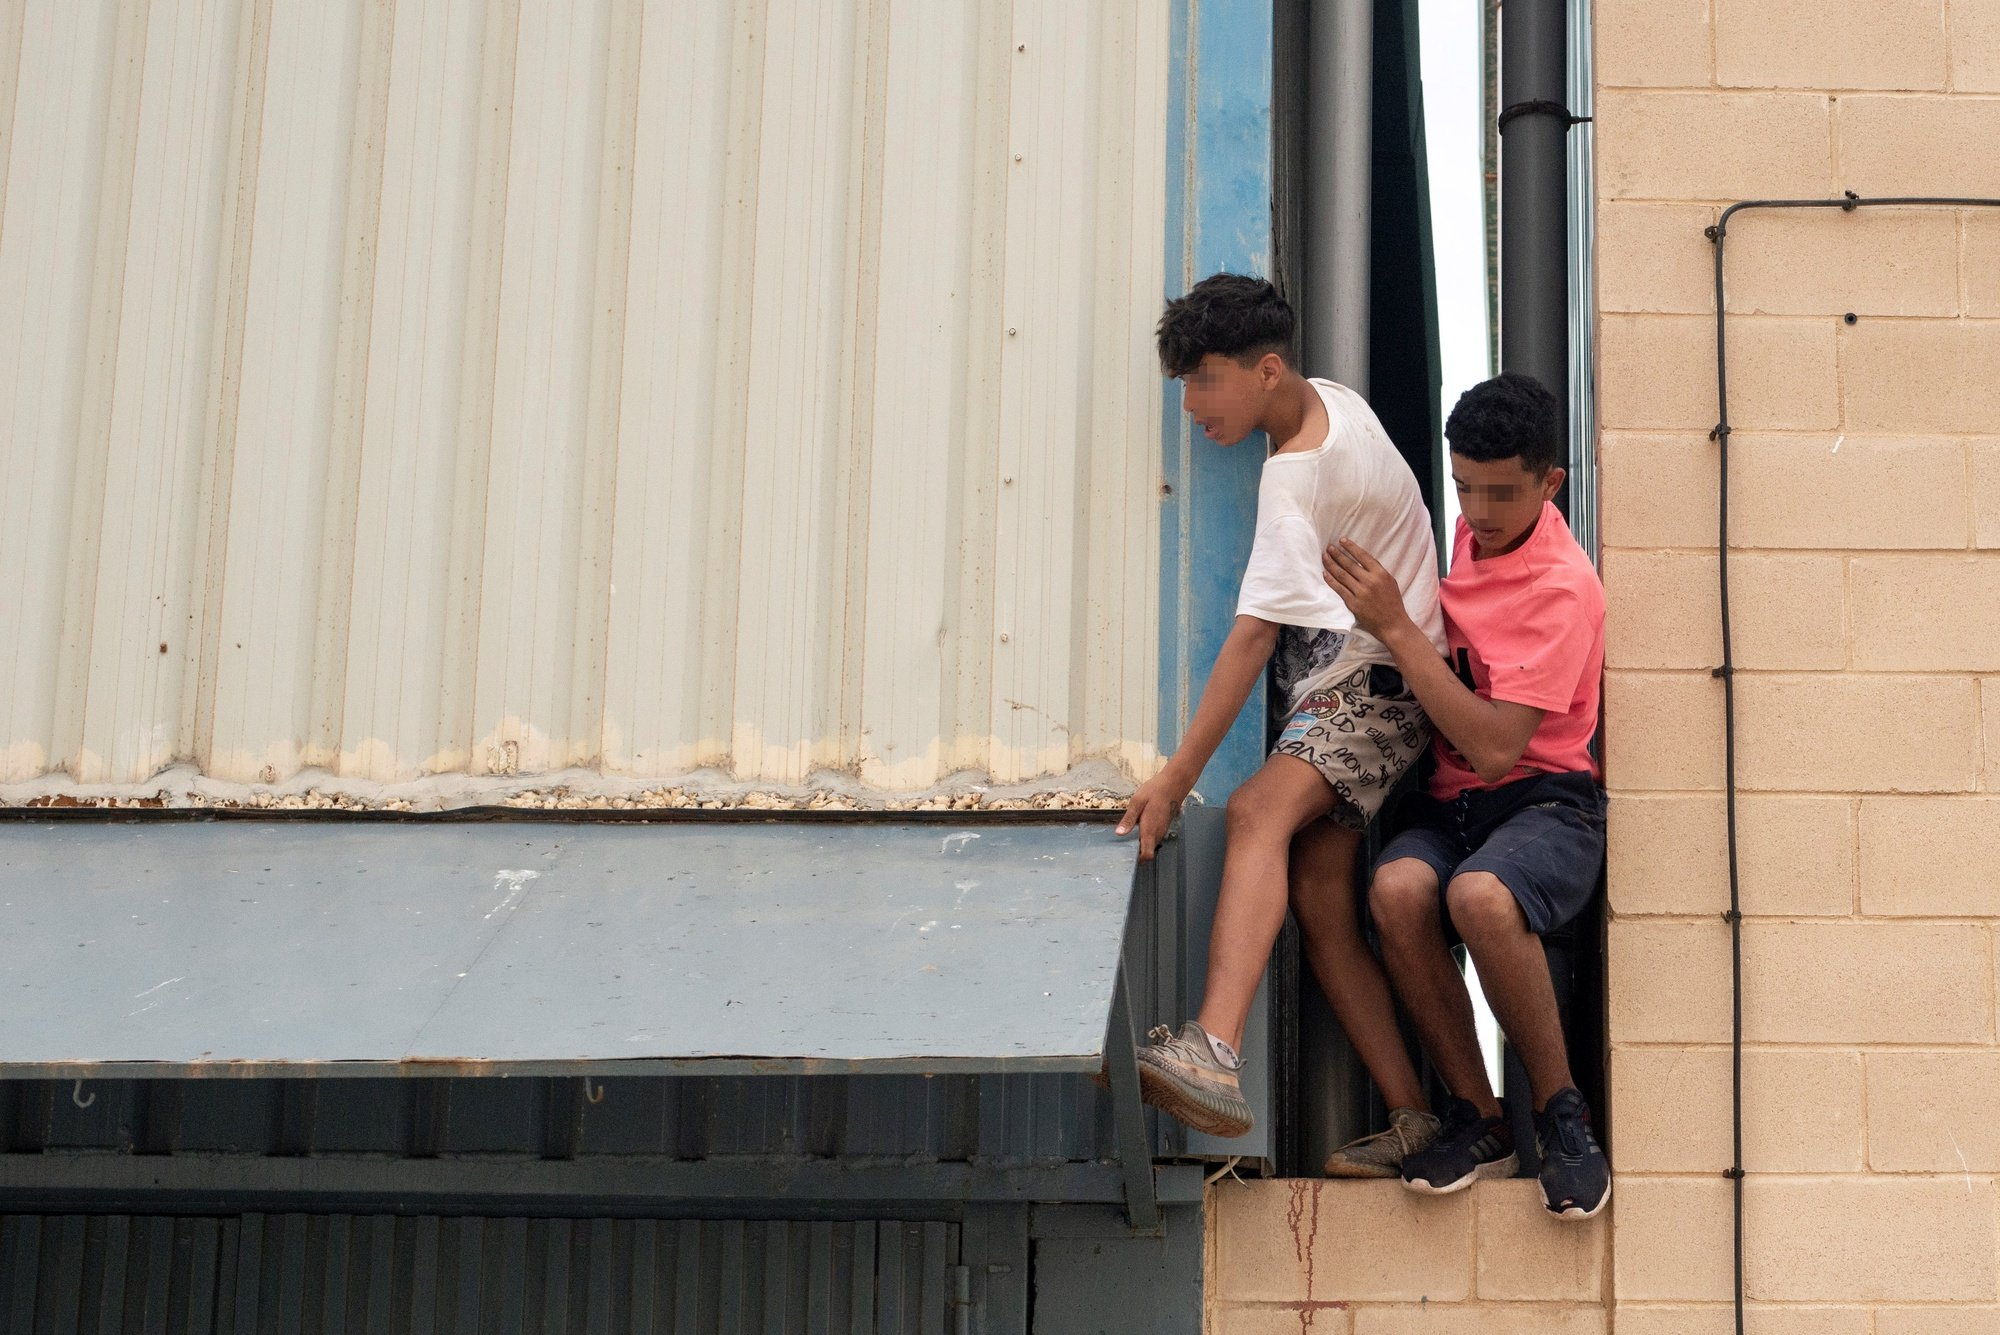 epa09218155 Two underage migrants escape from an industrial estate next to Tarajal beach, in the city of Ceuta, Spanish enclave in northern Africa, 21 May 2021. Local authorities reported that between 8,000-10,000 migrants managed to enter Spain from 18 to 19 May.  EPA/BRAIS LORENZO ATTENTION EDITORS: FACES PIXELATED AT SOURCE DUE TO LEGAL REQUIREMENTS